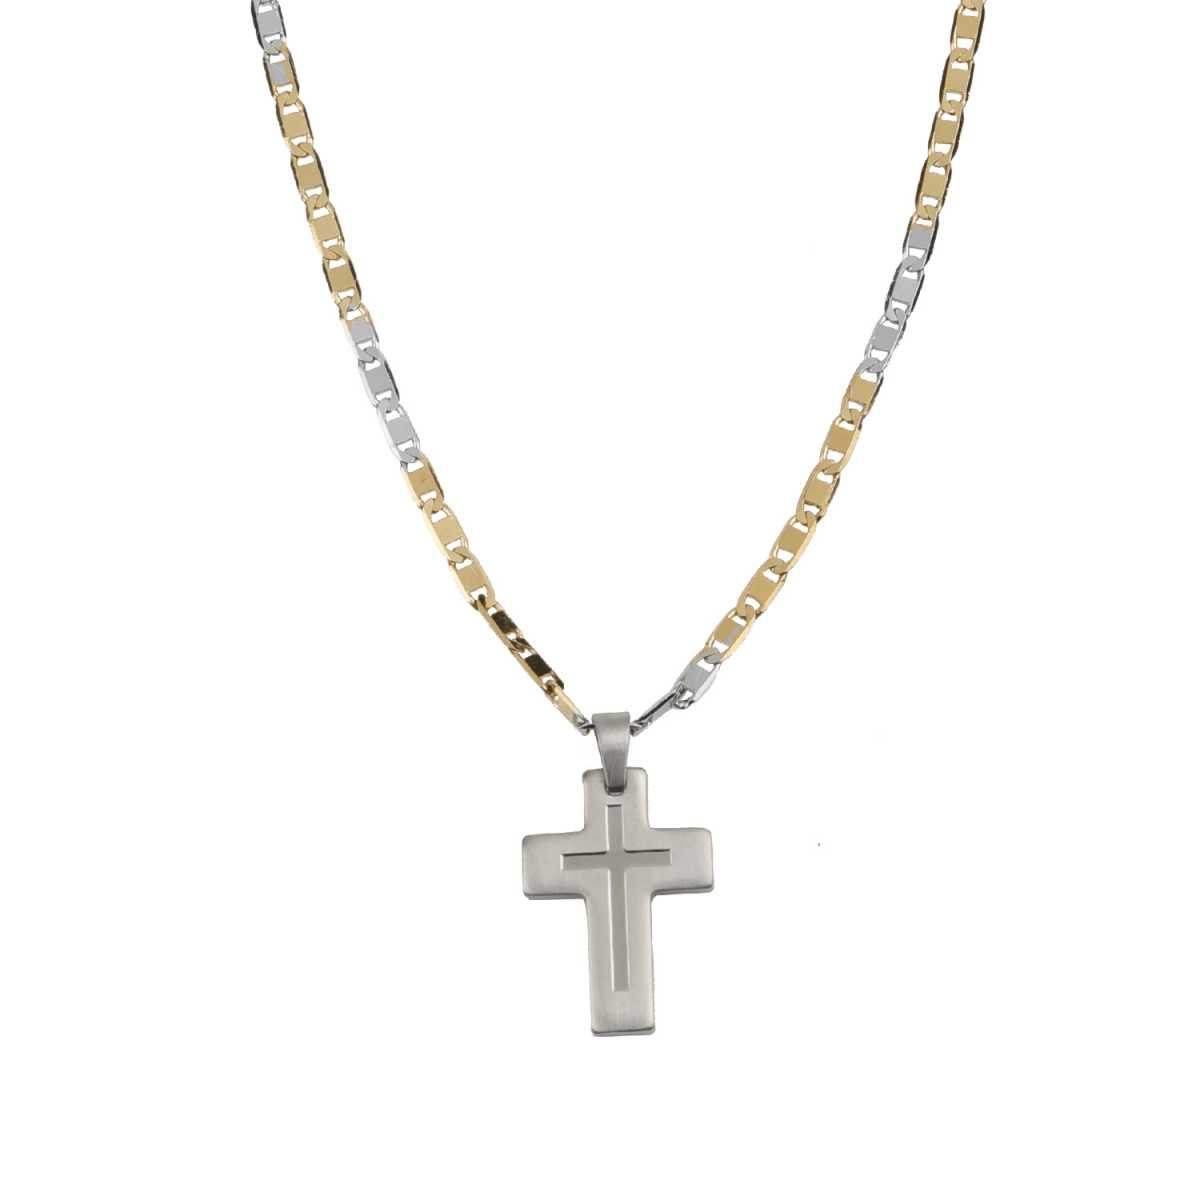 Silver Shine Attractive Silver  Plated Cross Pendent Chain Of 24 Inch Neckless For Gents/Men/Boys